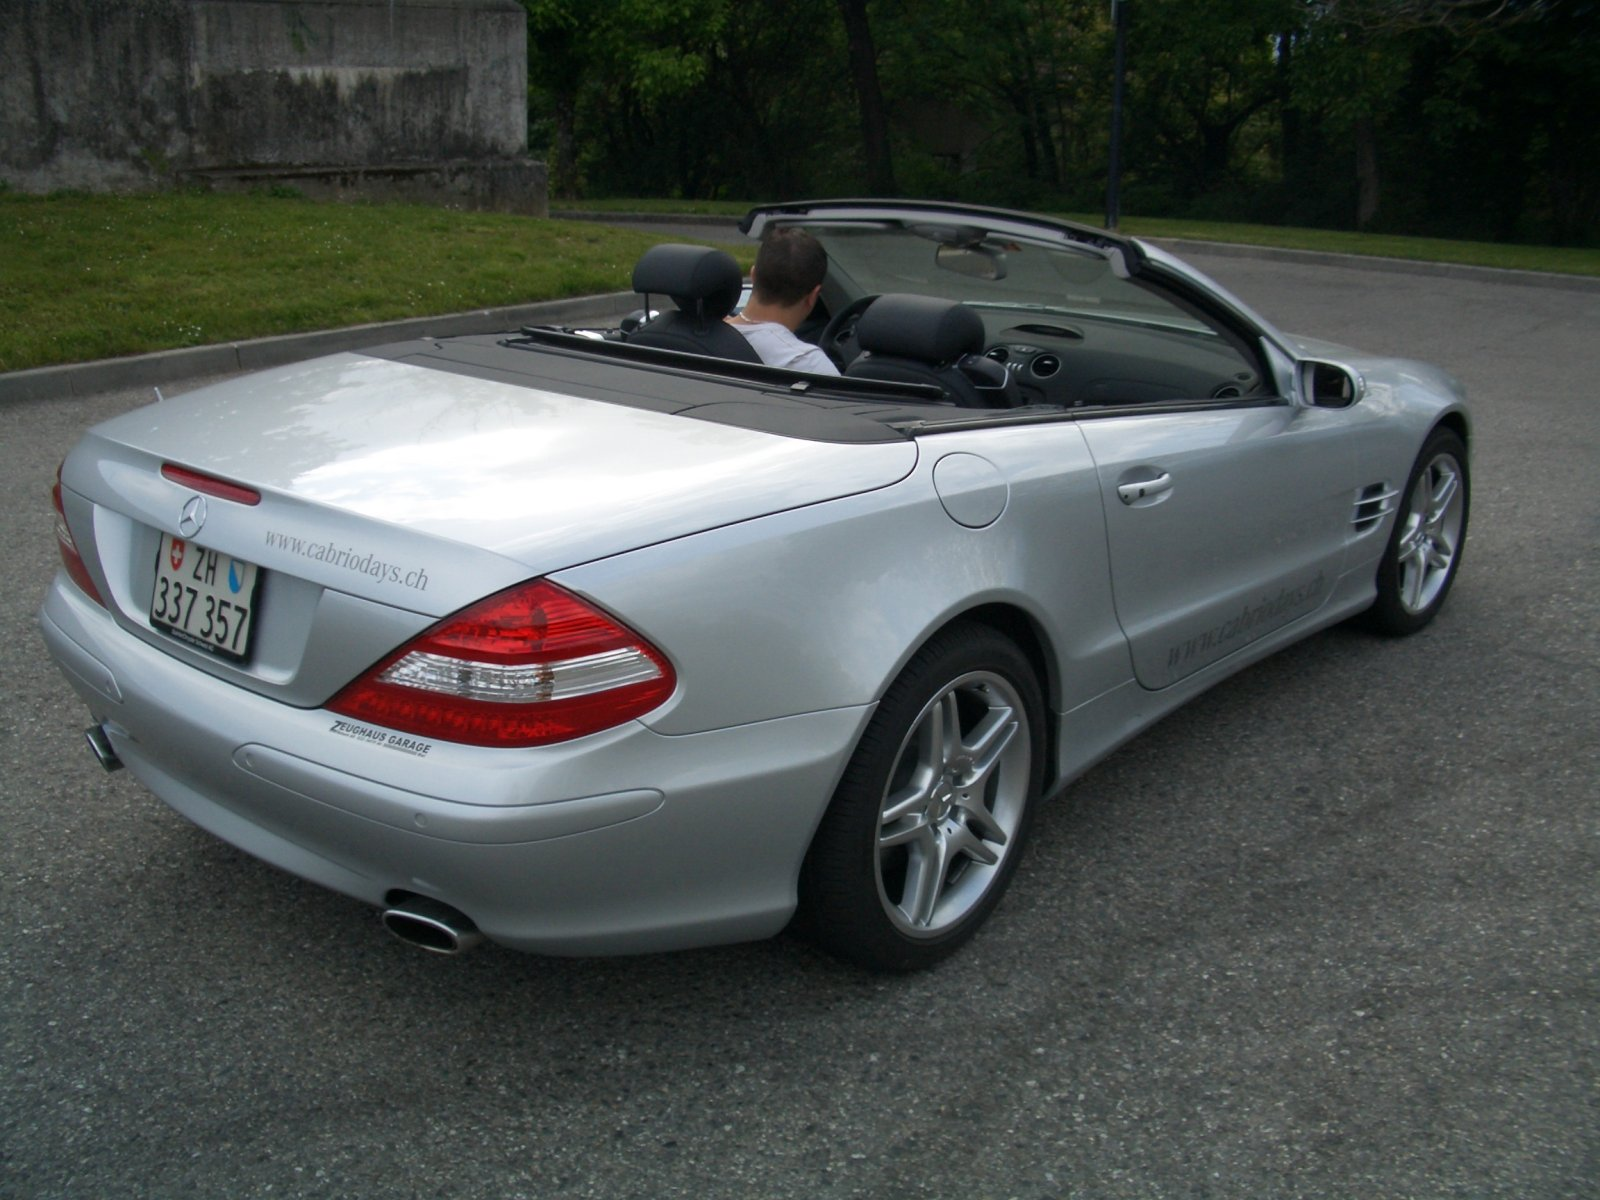 aujourd u0026 39 hui j u0026 39 ai test u00e9 une slk 350 et une sl 500  tofs